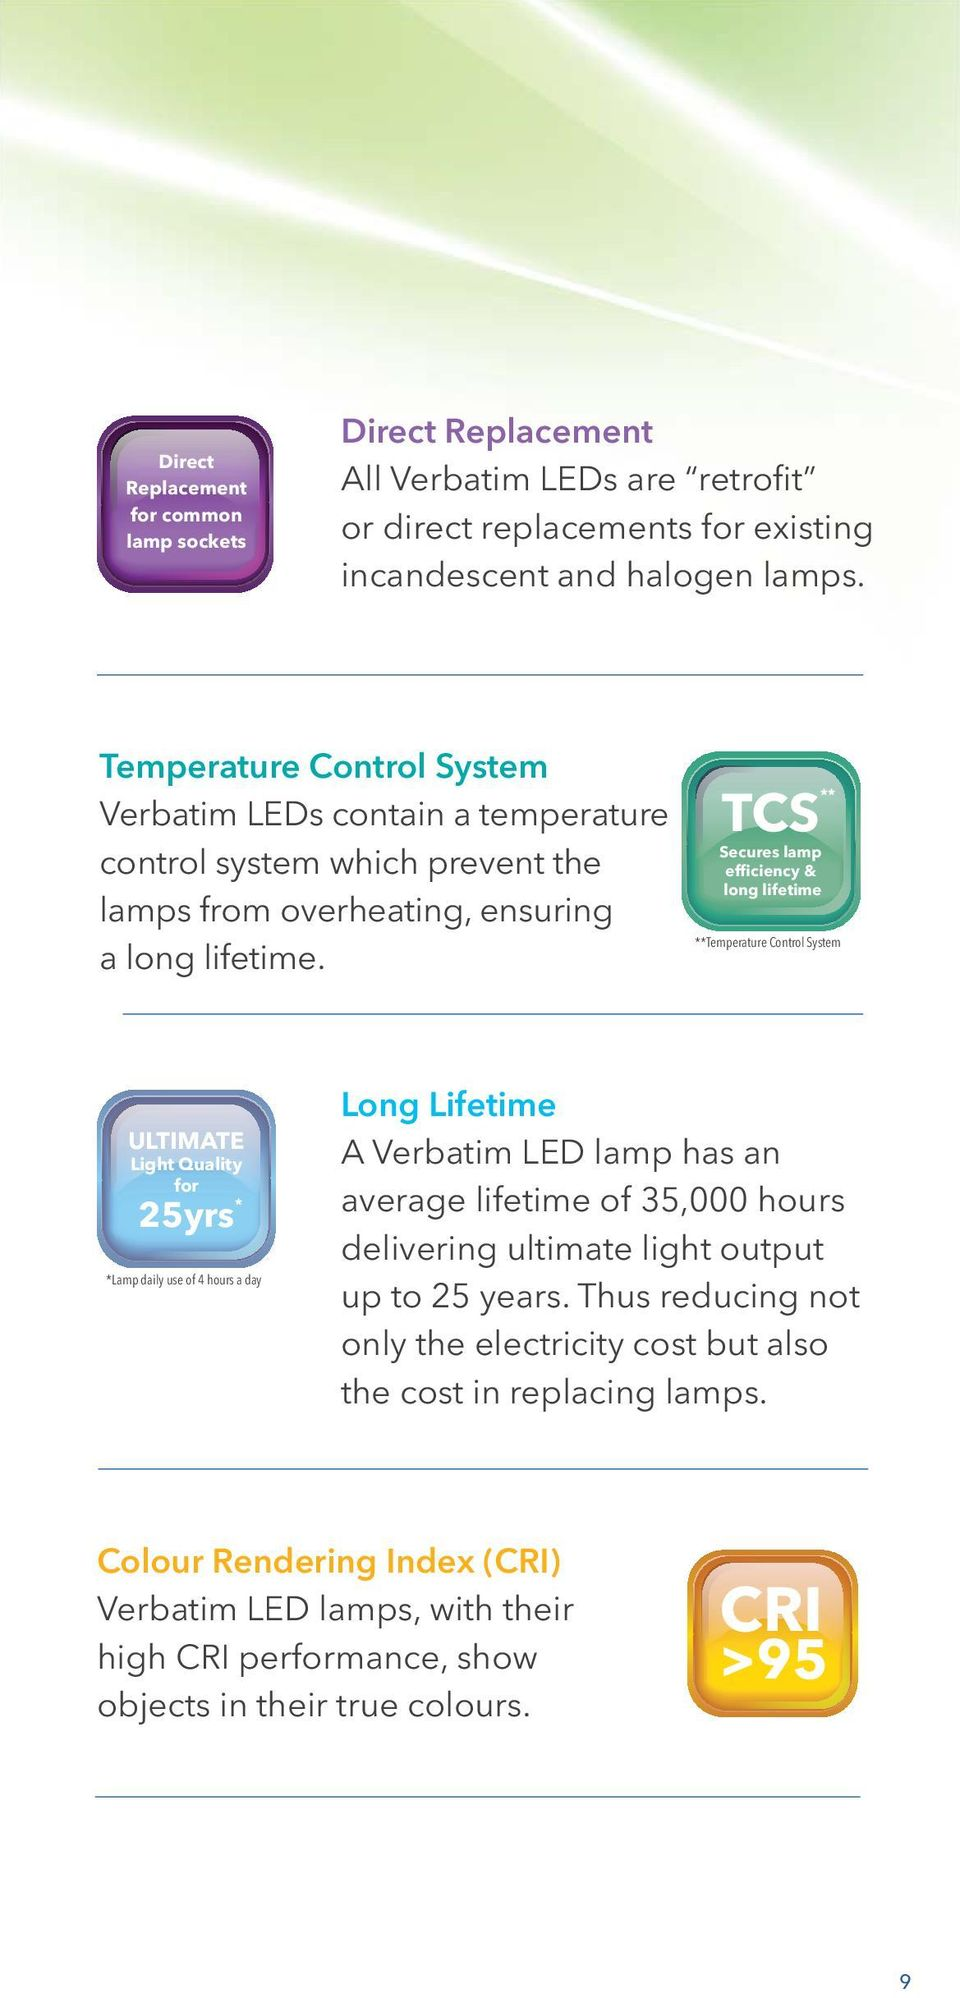 TCS Secures lamp efficiency & long lifetime **Temperature Control System ULTIMATE Light Quality for 25yrs *Lamp daily use of 4 hours a day Long Lifetime A Verbatim LED lamp has an average